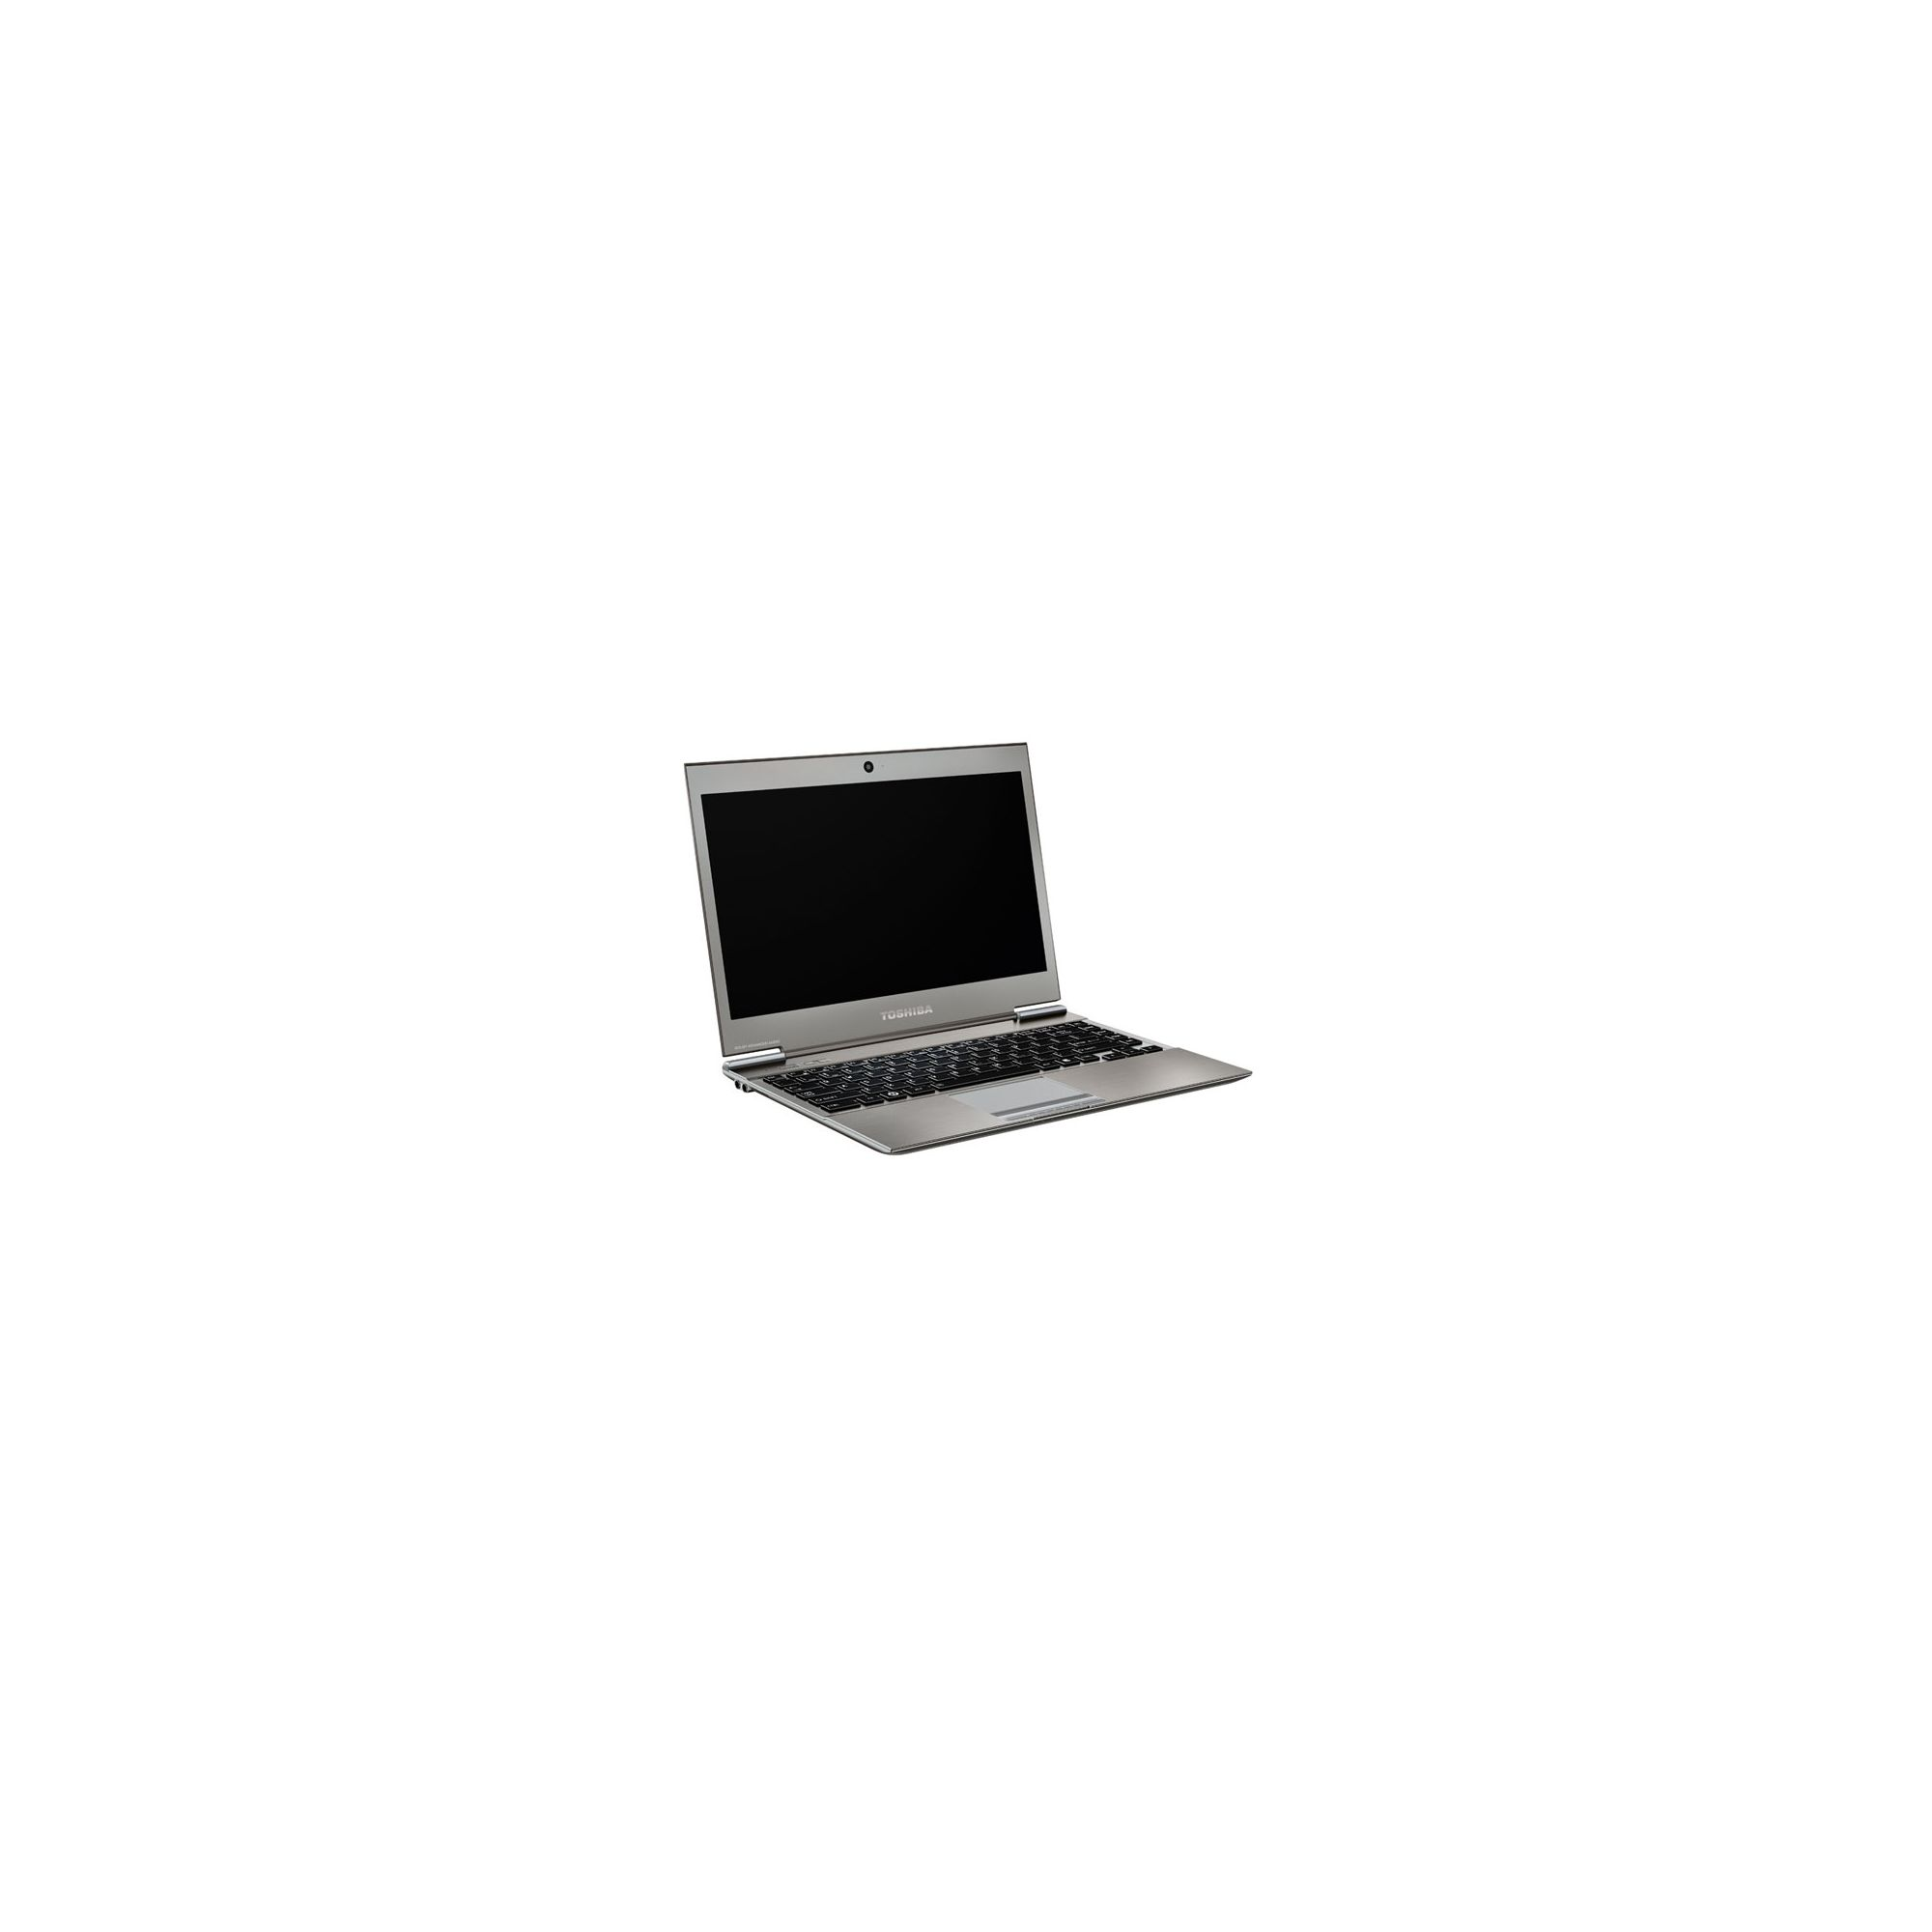 Toshiba Portege Z830-10N 13. 3 inch Notebook PC Intel Core i3 (2367M) 1. at Tescos Direct